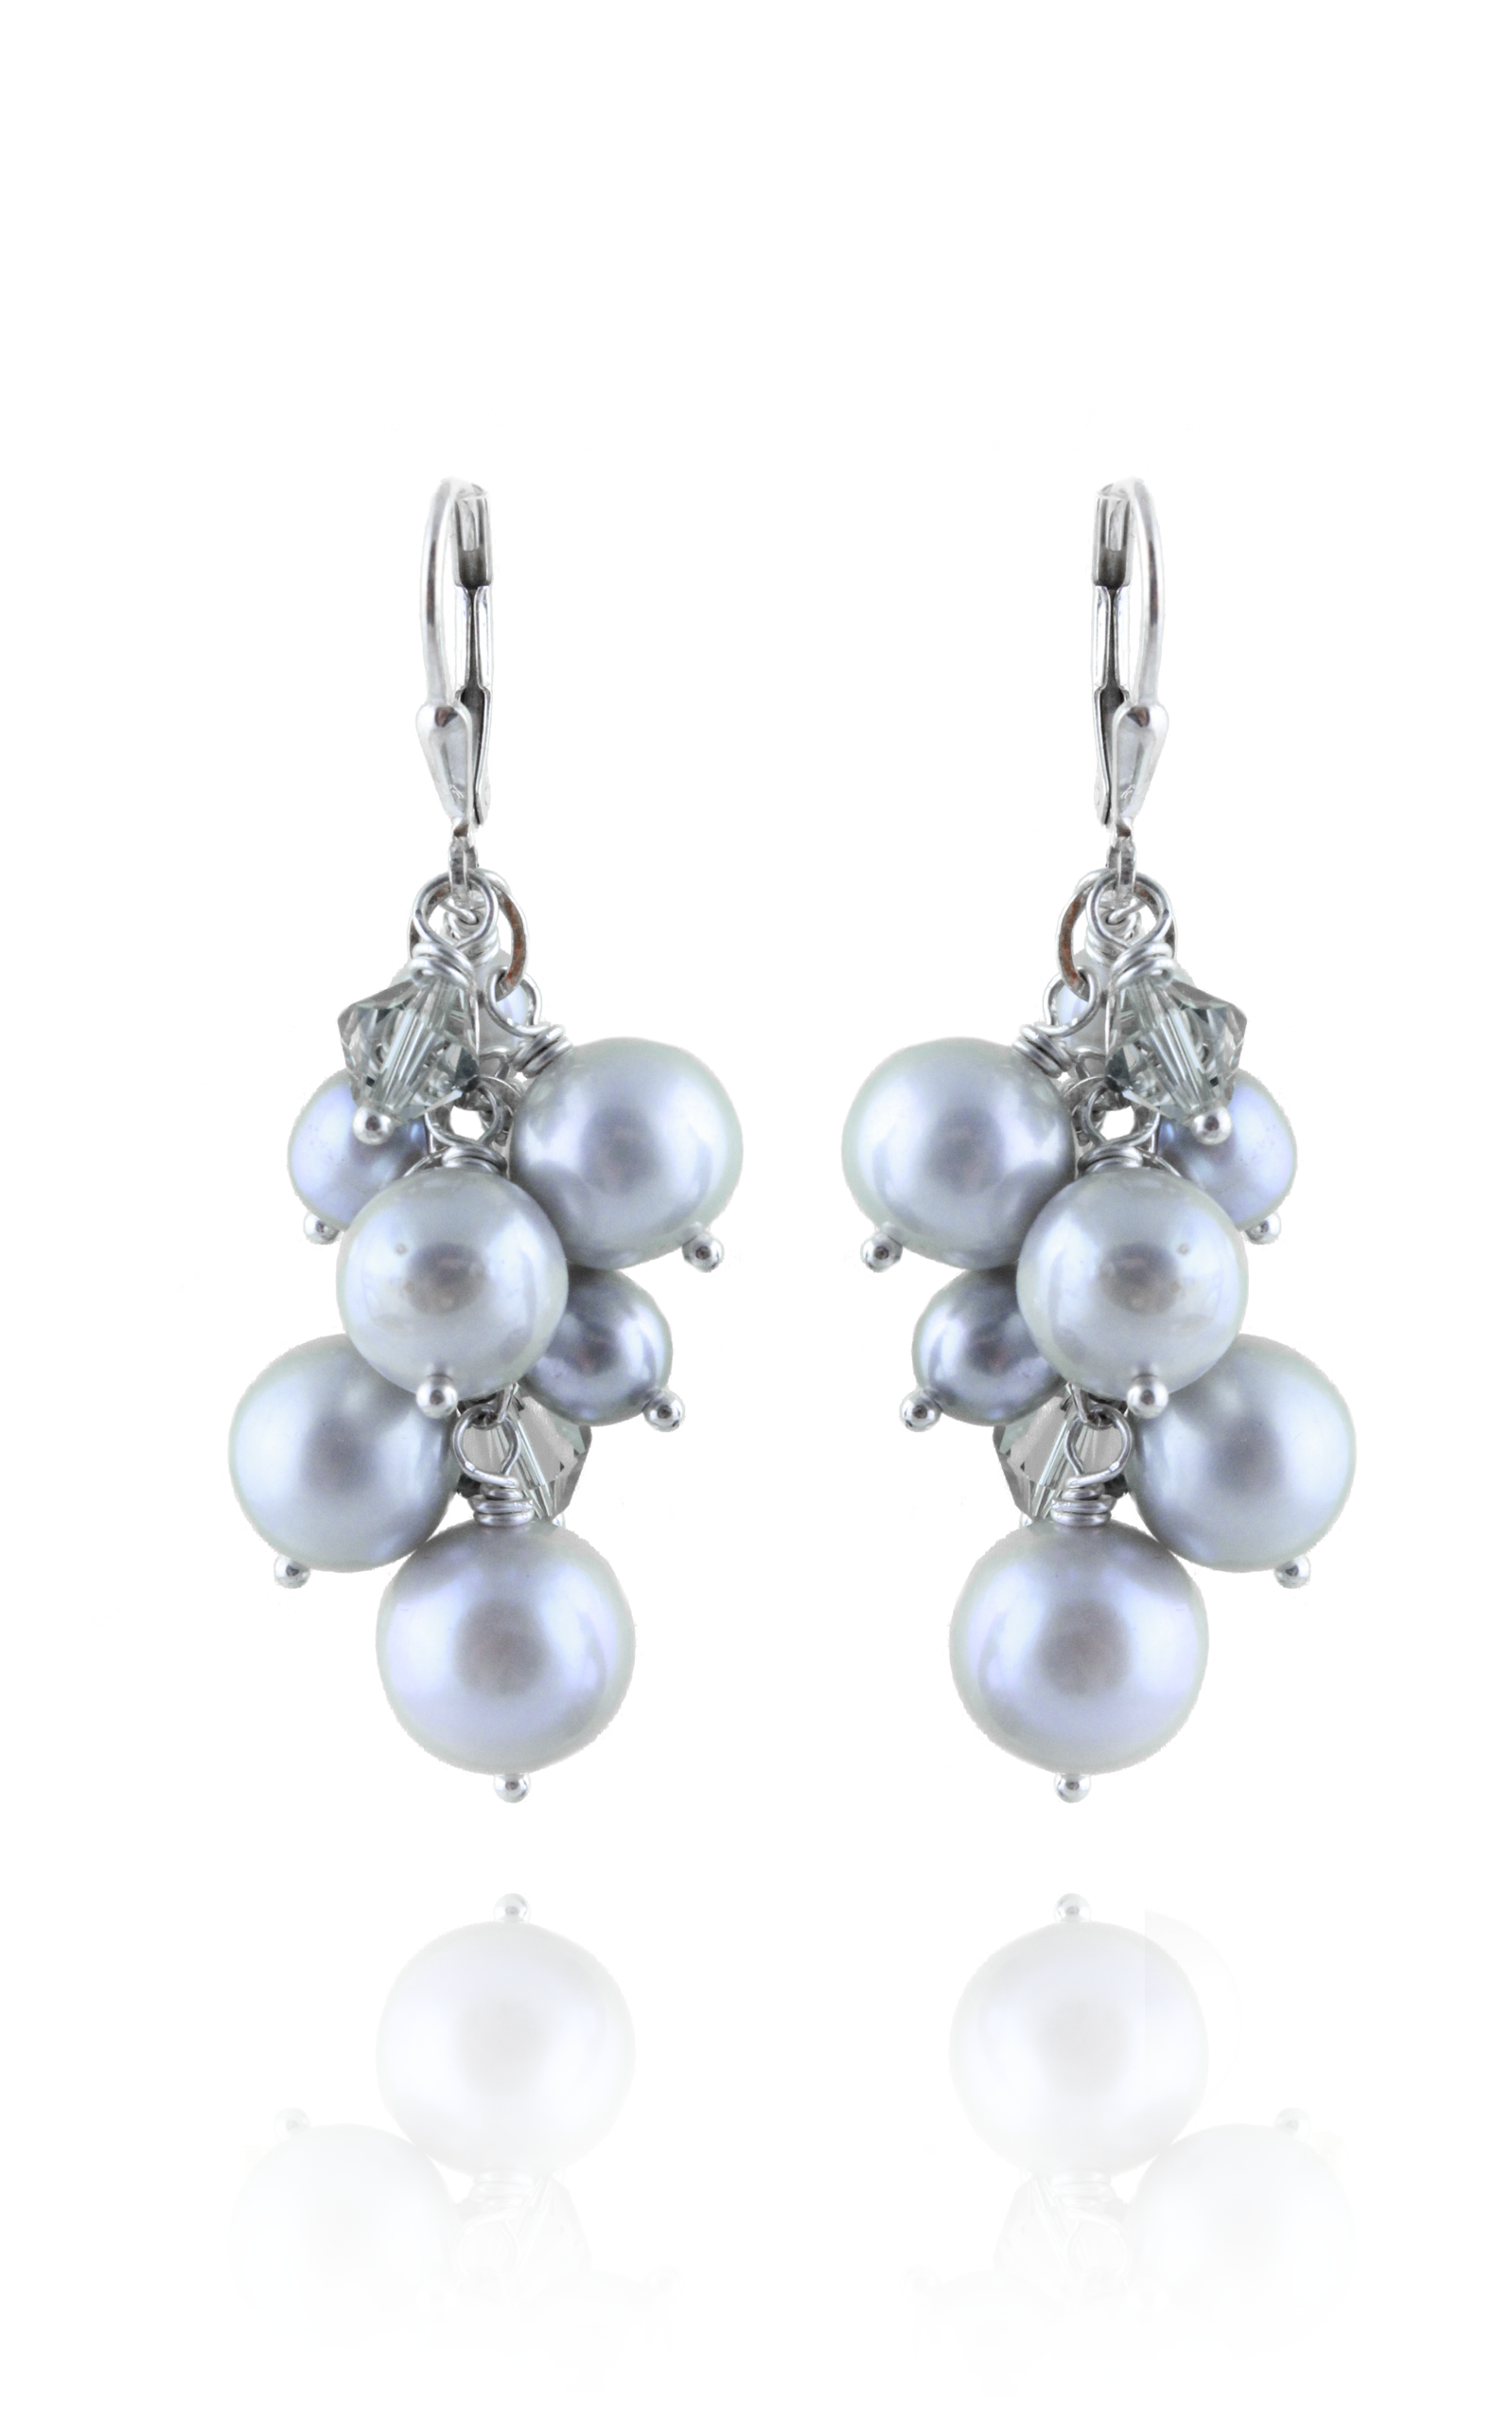 ear diamond birks and freshwater en rings earrings splash pearlearrings pearl drop